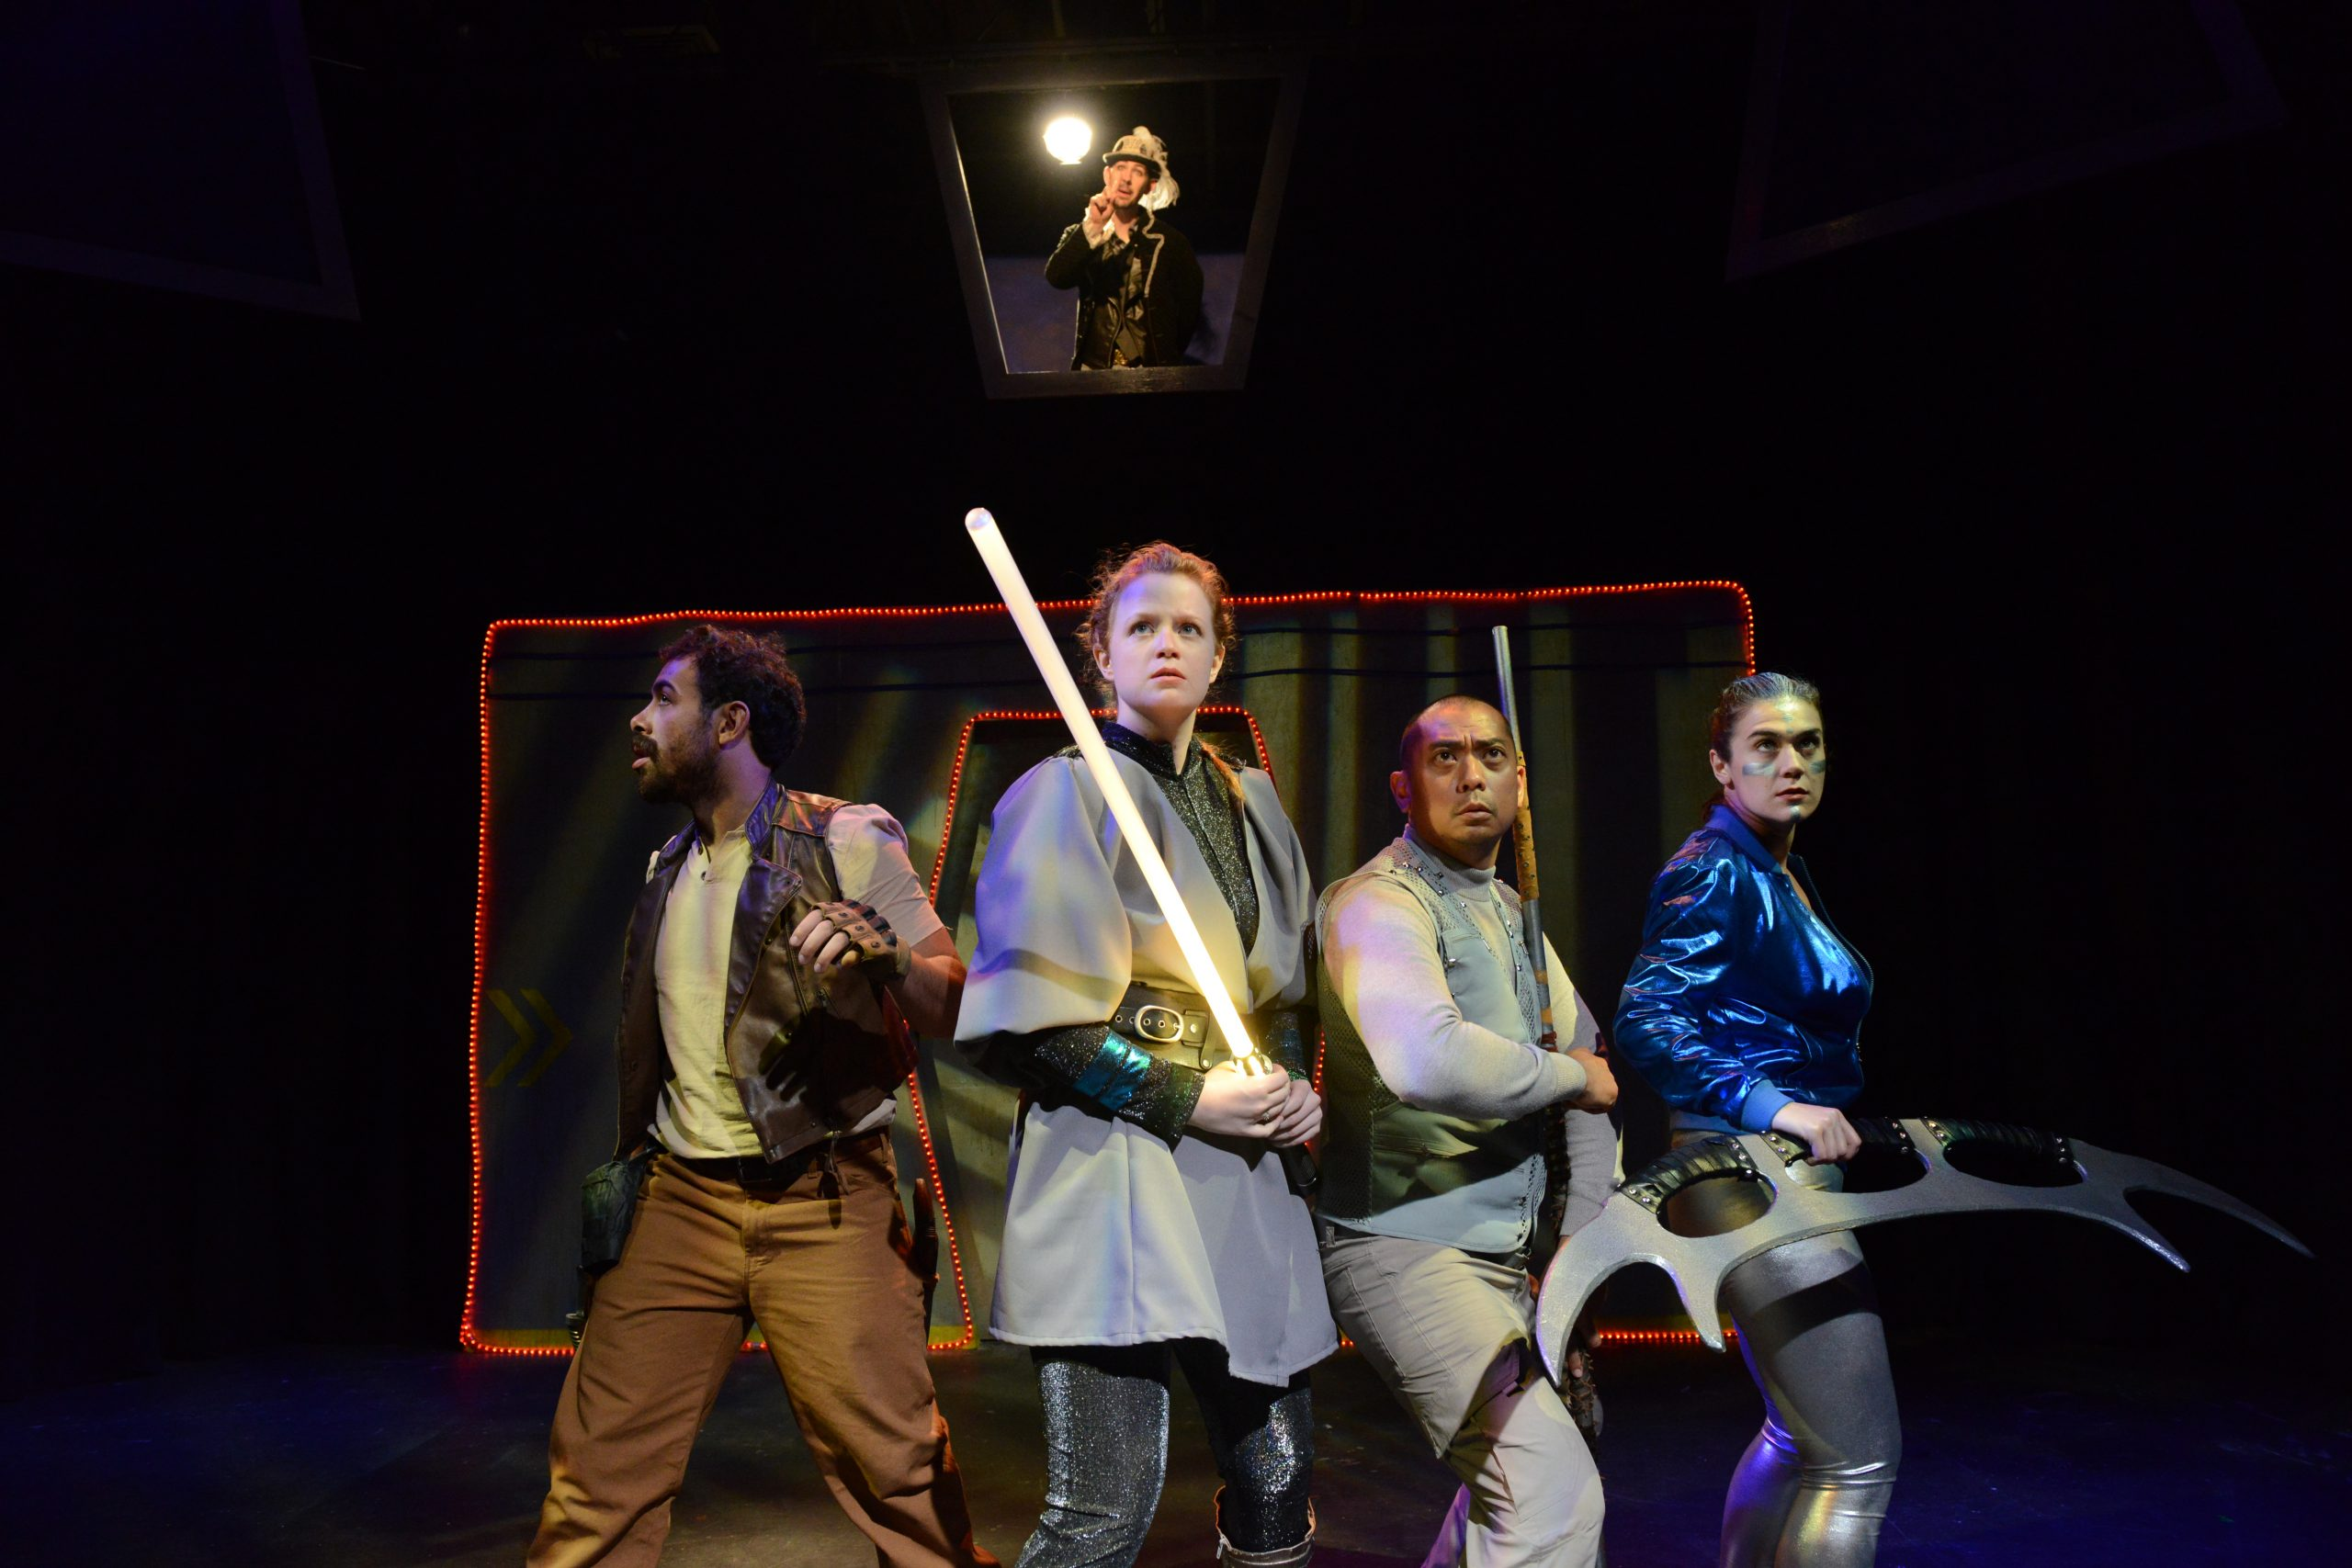 <i>Engage! A Choose-Your-Own Sci-Fight Show</i>, at Theater Wit